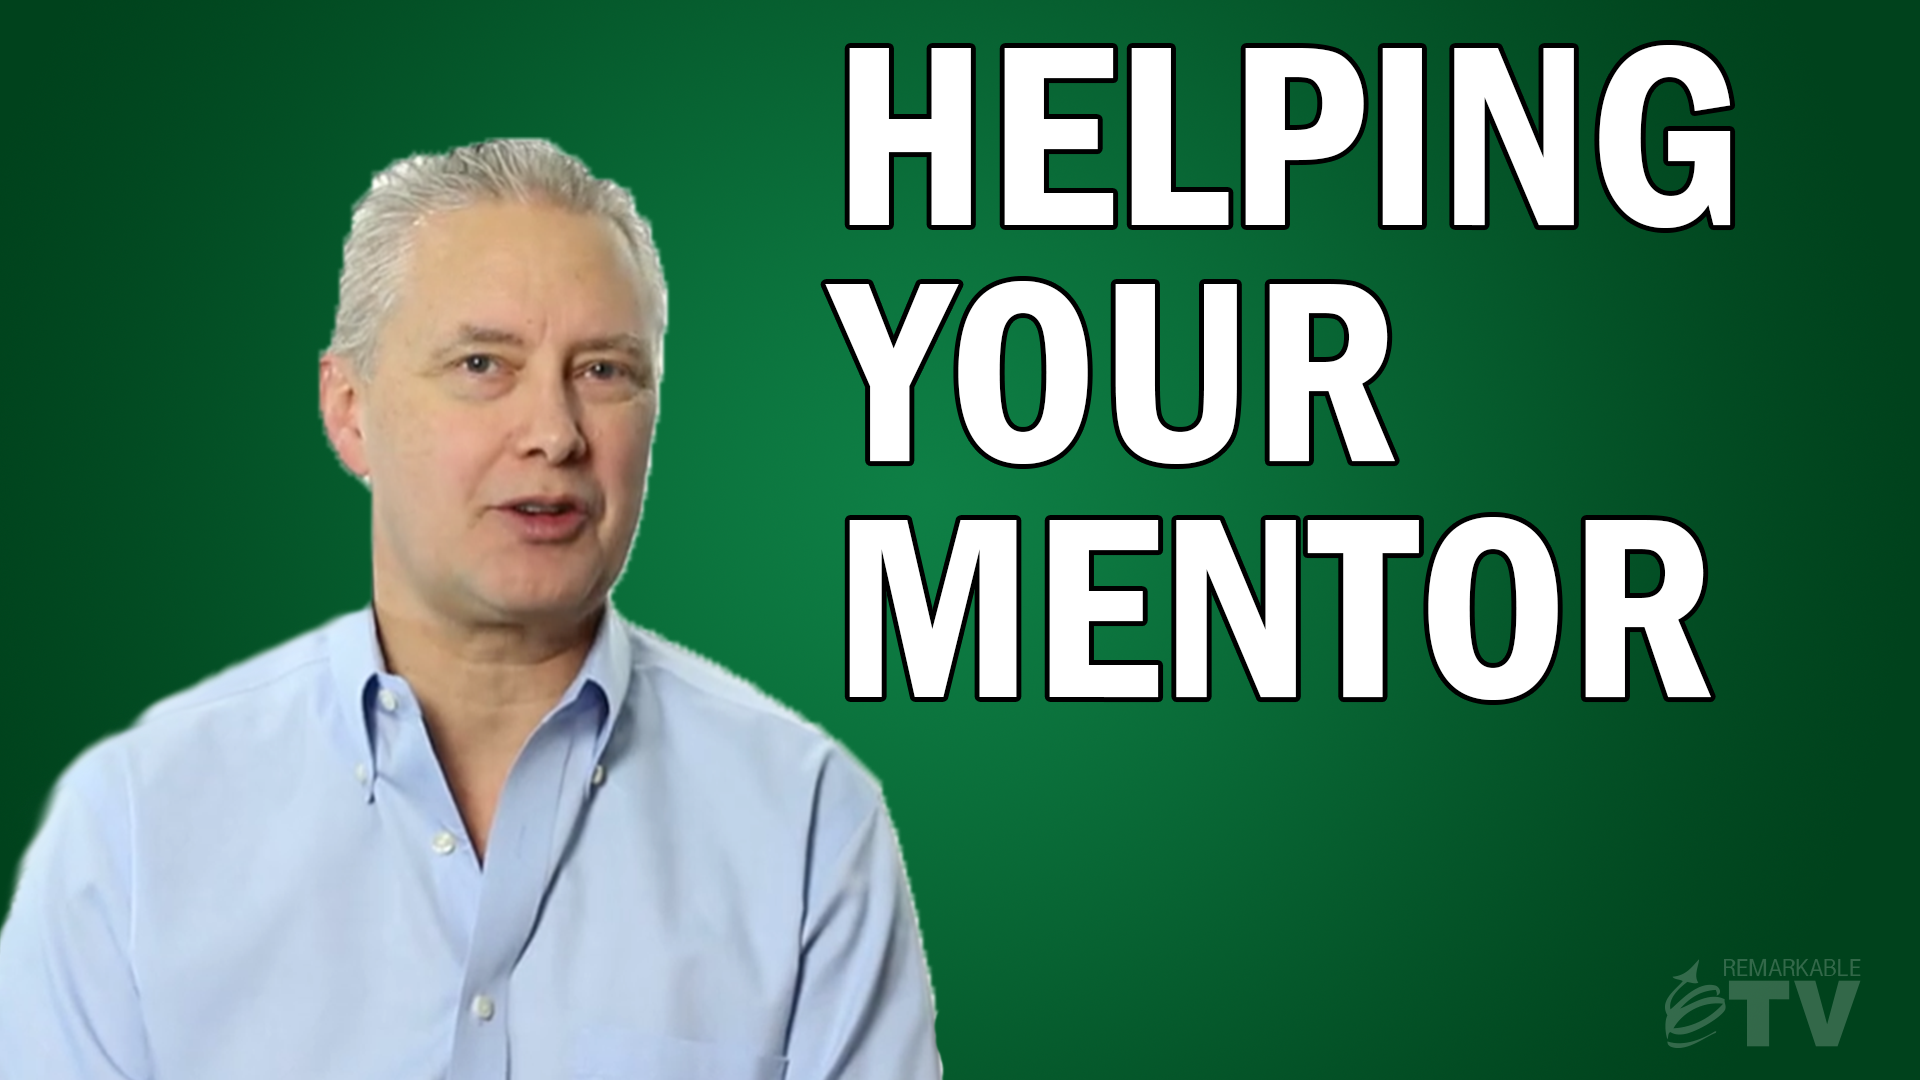 Helping Your Mentor - Remarkable TV episode with leadership expert Kevin Eikenberry